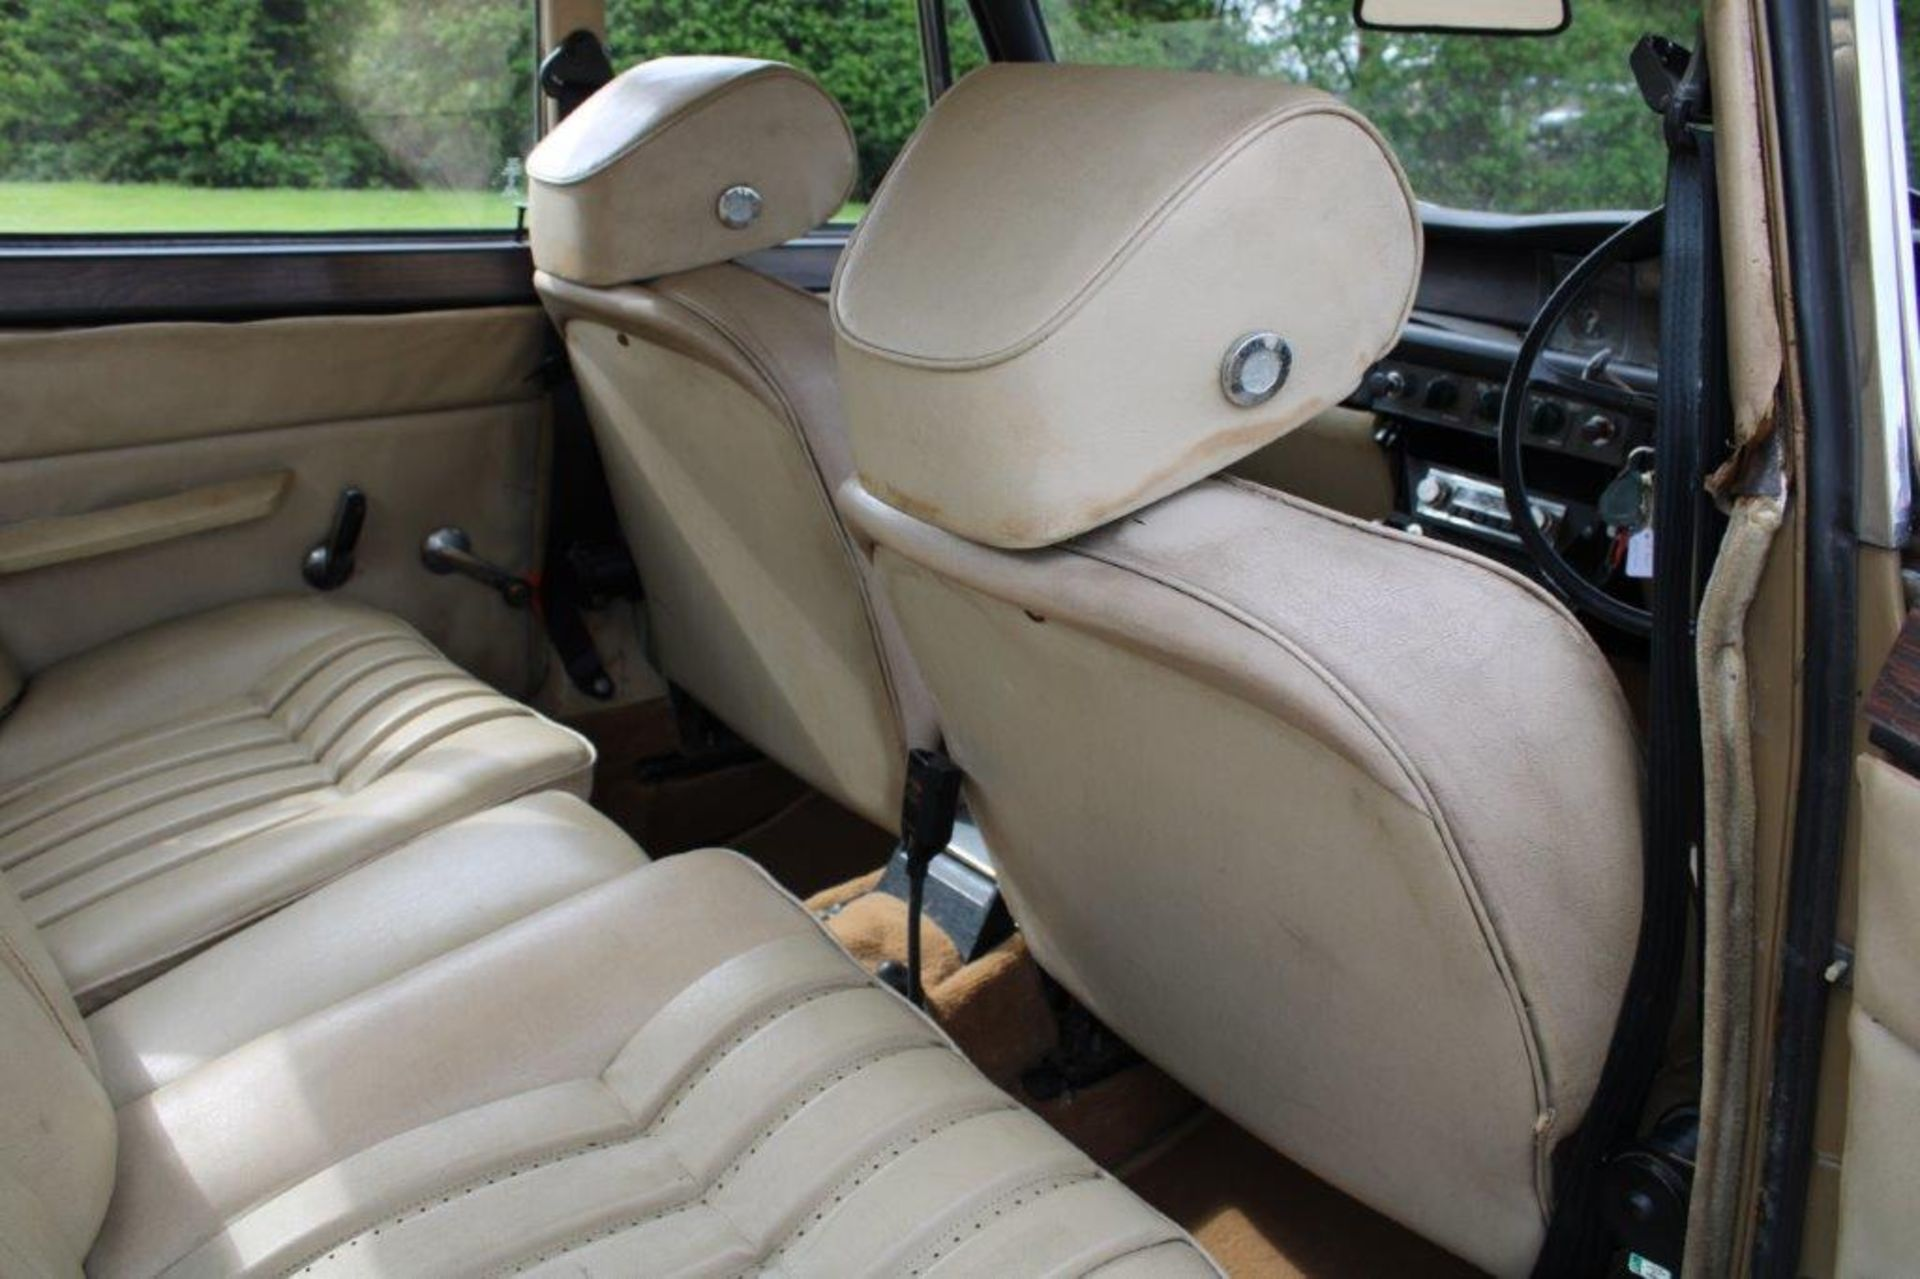 1970 Rover P6 3500 S 1 of 6 development cars - Image 15 of 21